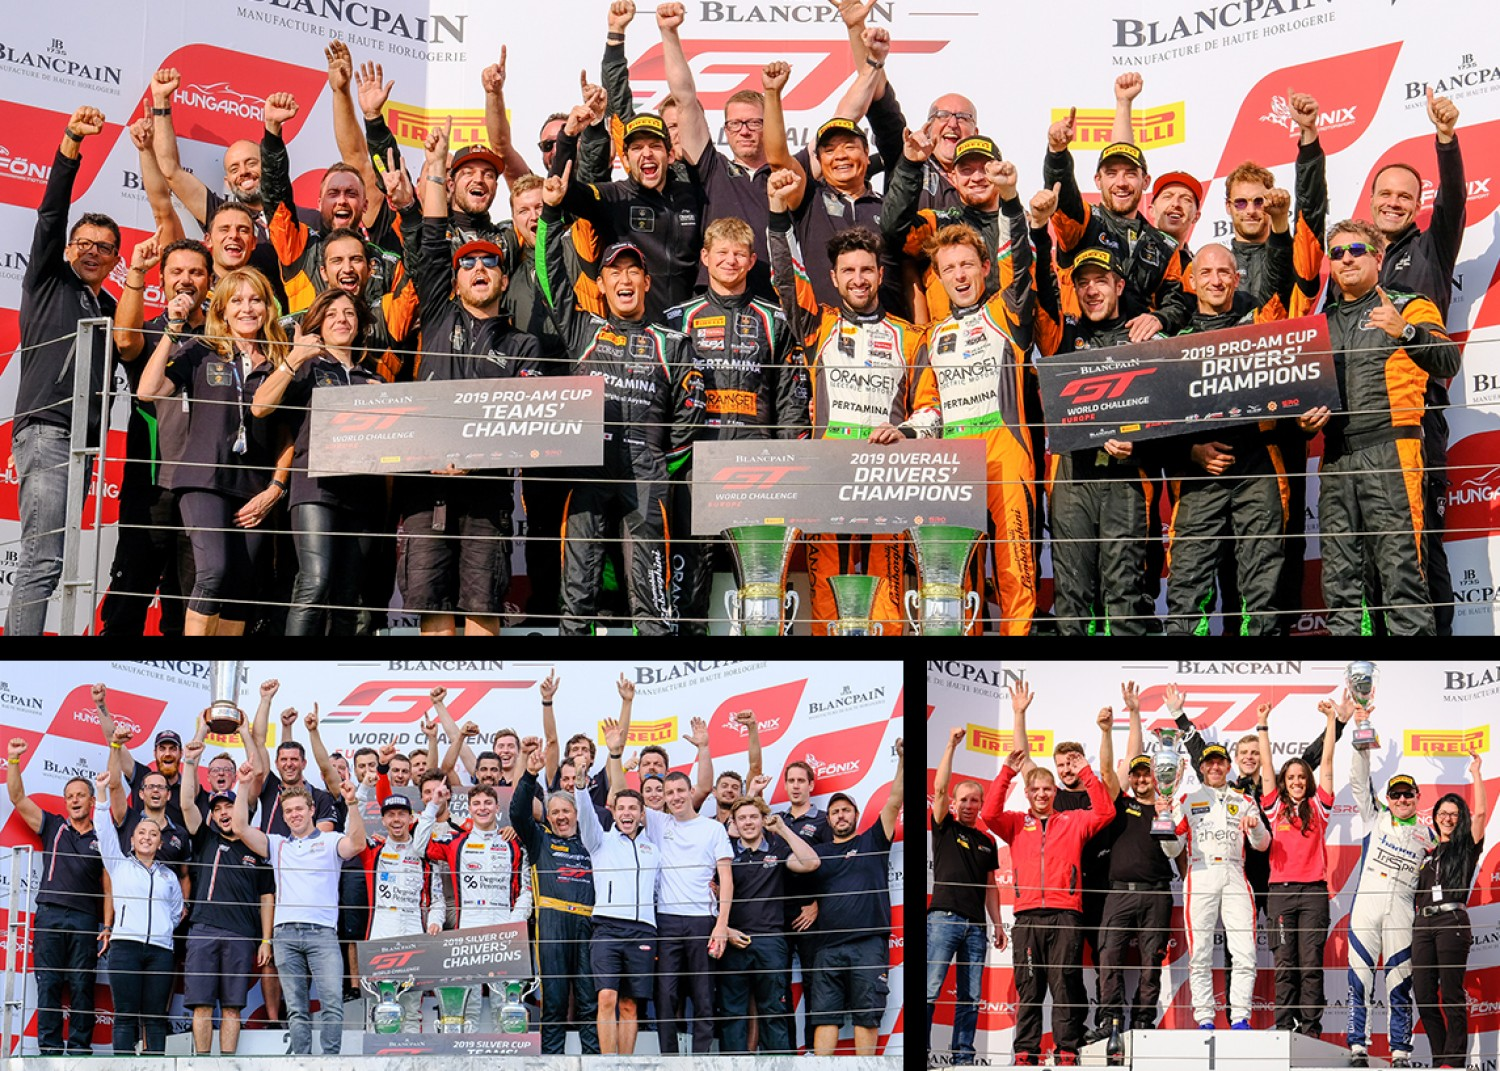 Orange1 FFF Racing Lamborghini duo Caldarelli and Mapelli crowned Blancpain GT World Challenge Europe champions at Hungaroring